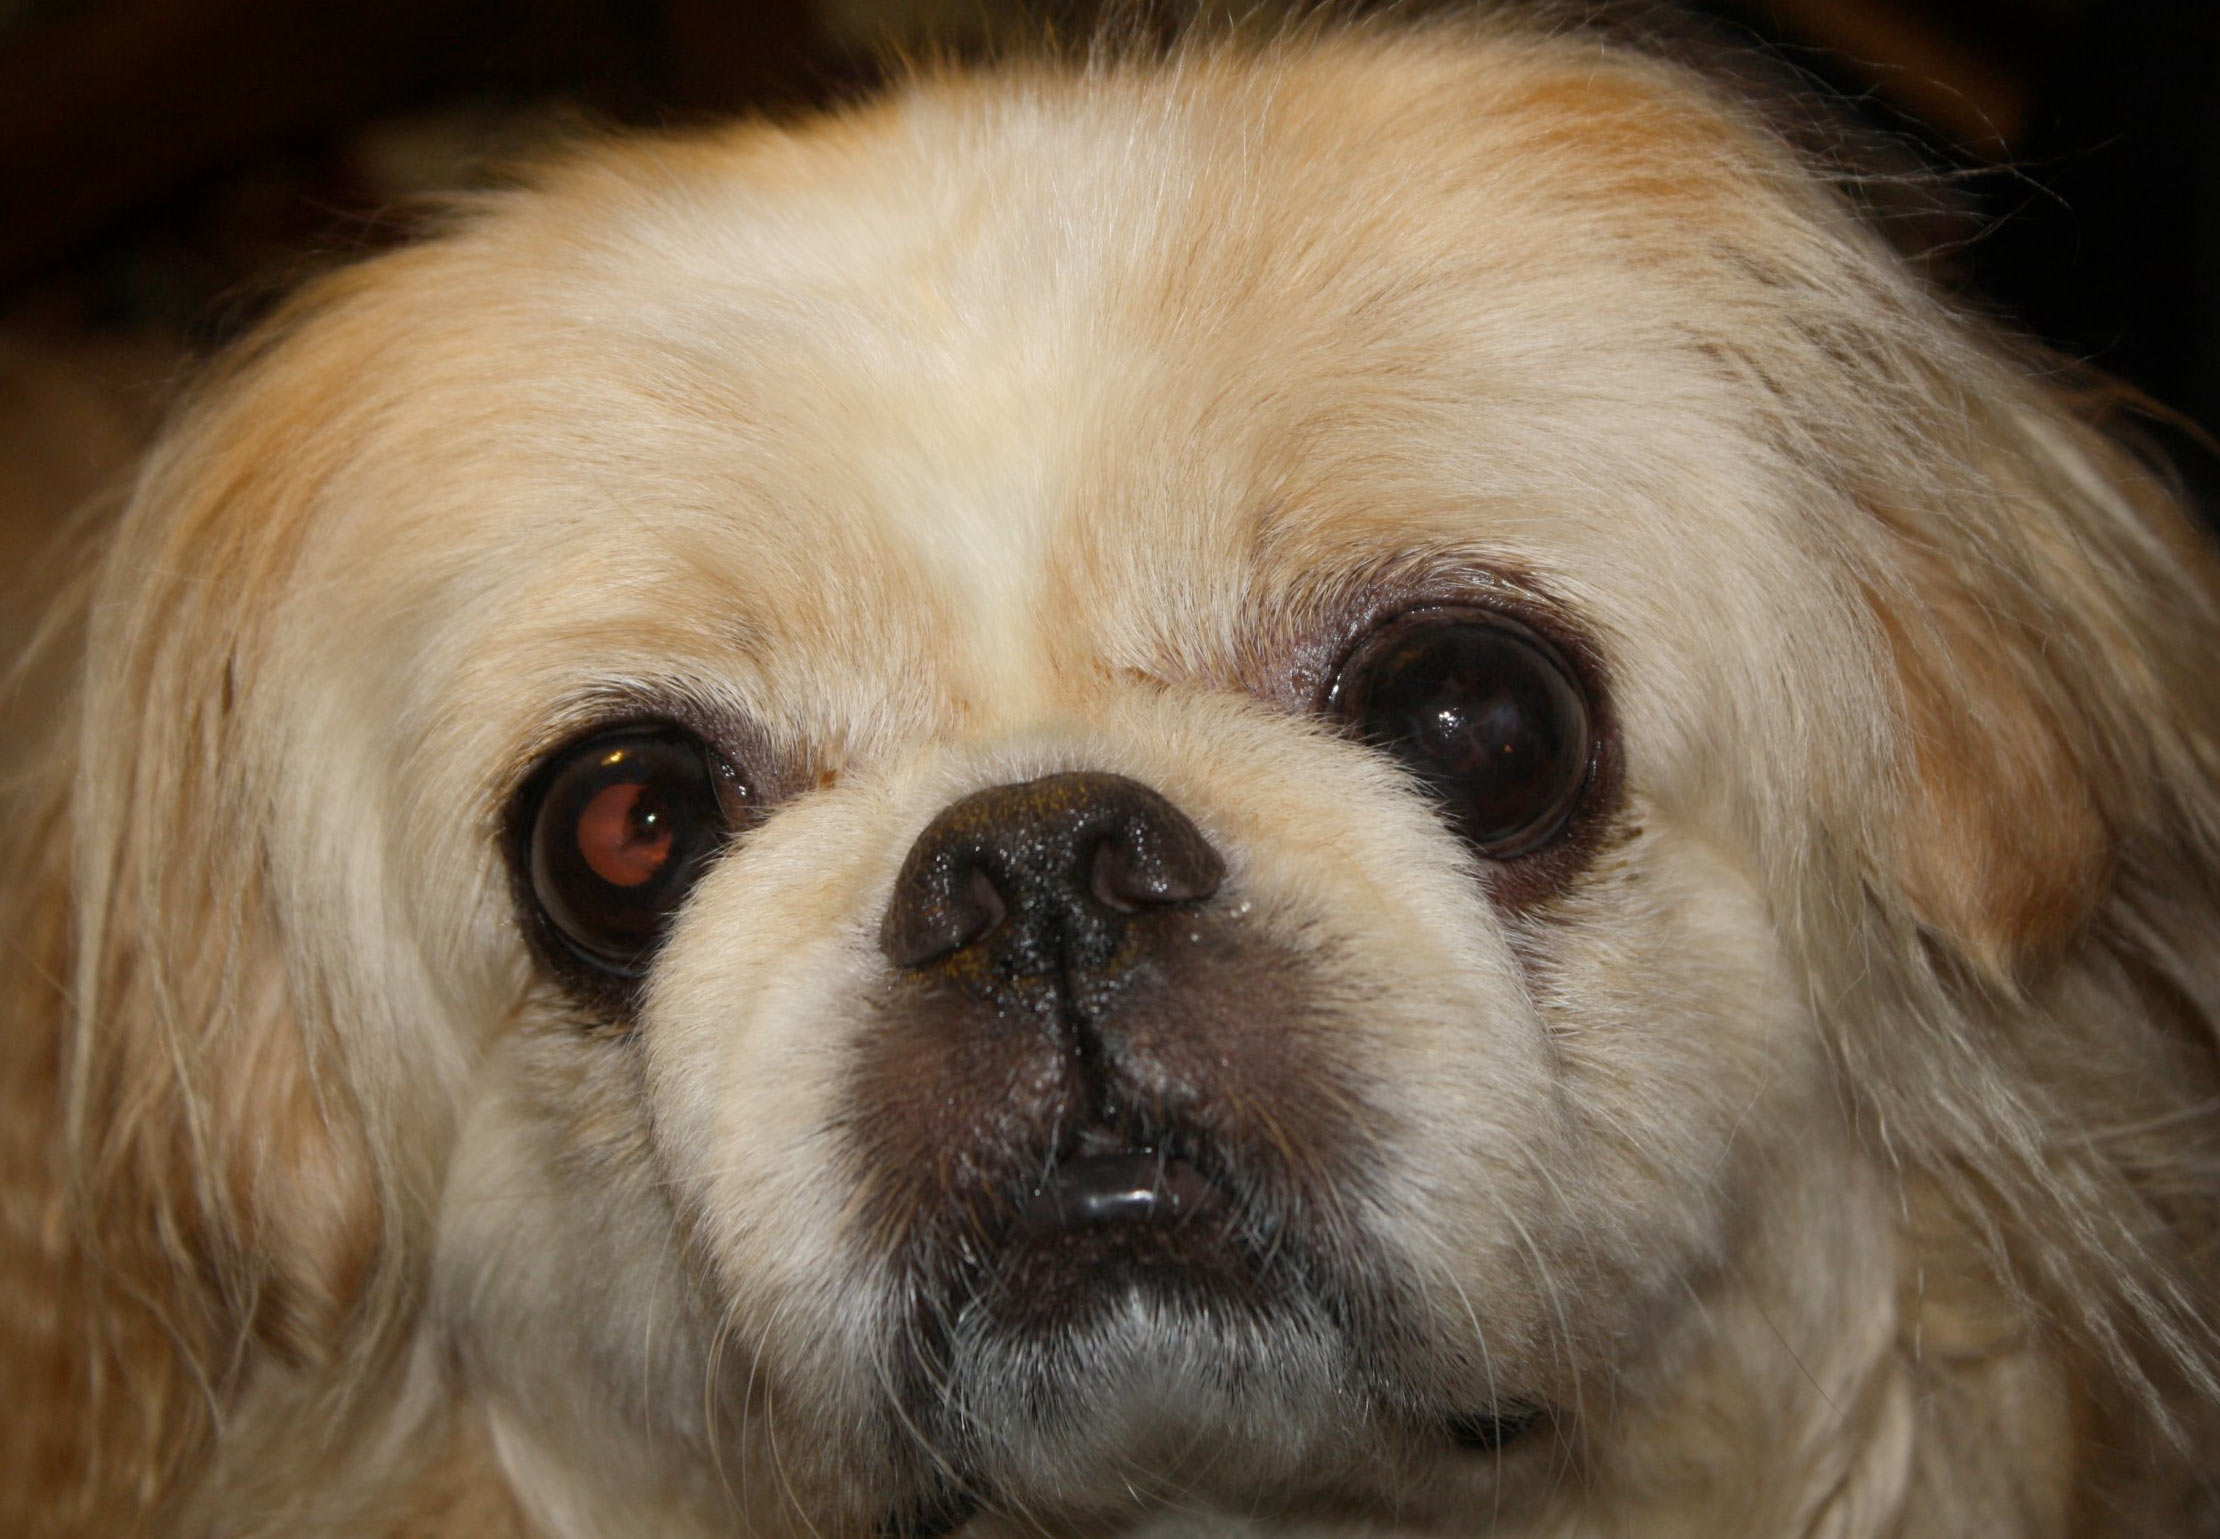 A Pekinese dog looks hungry - quick, find a restaurant that allows dogs.